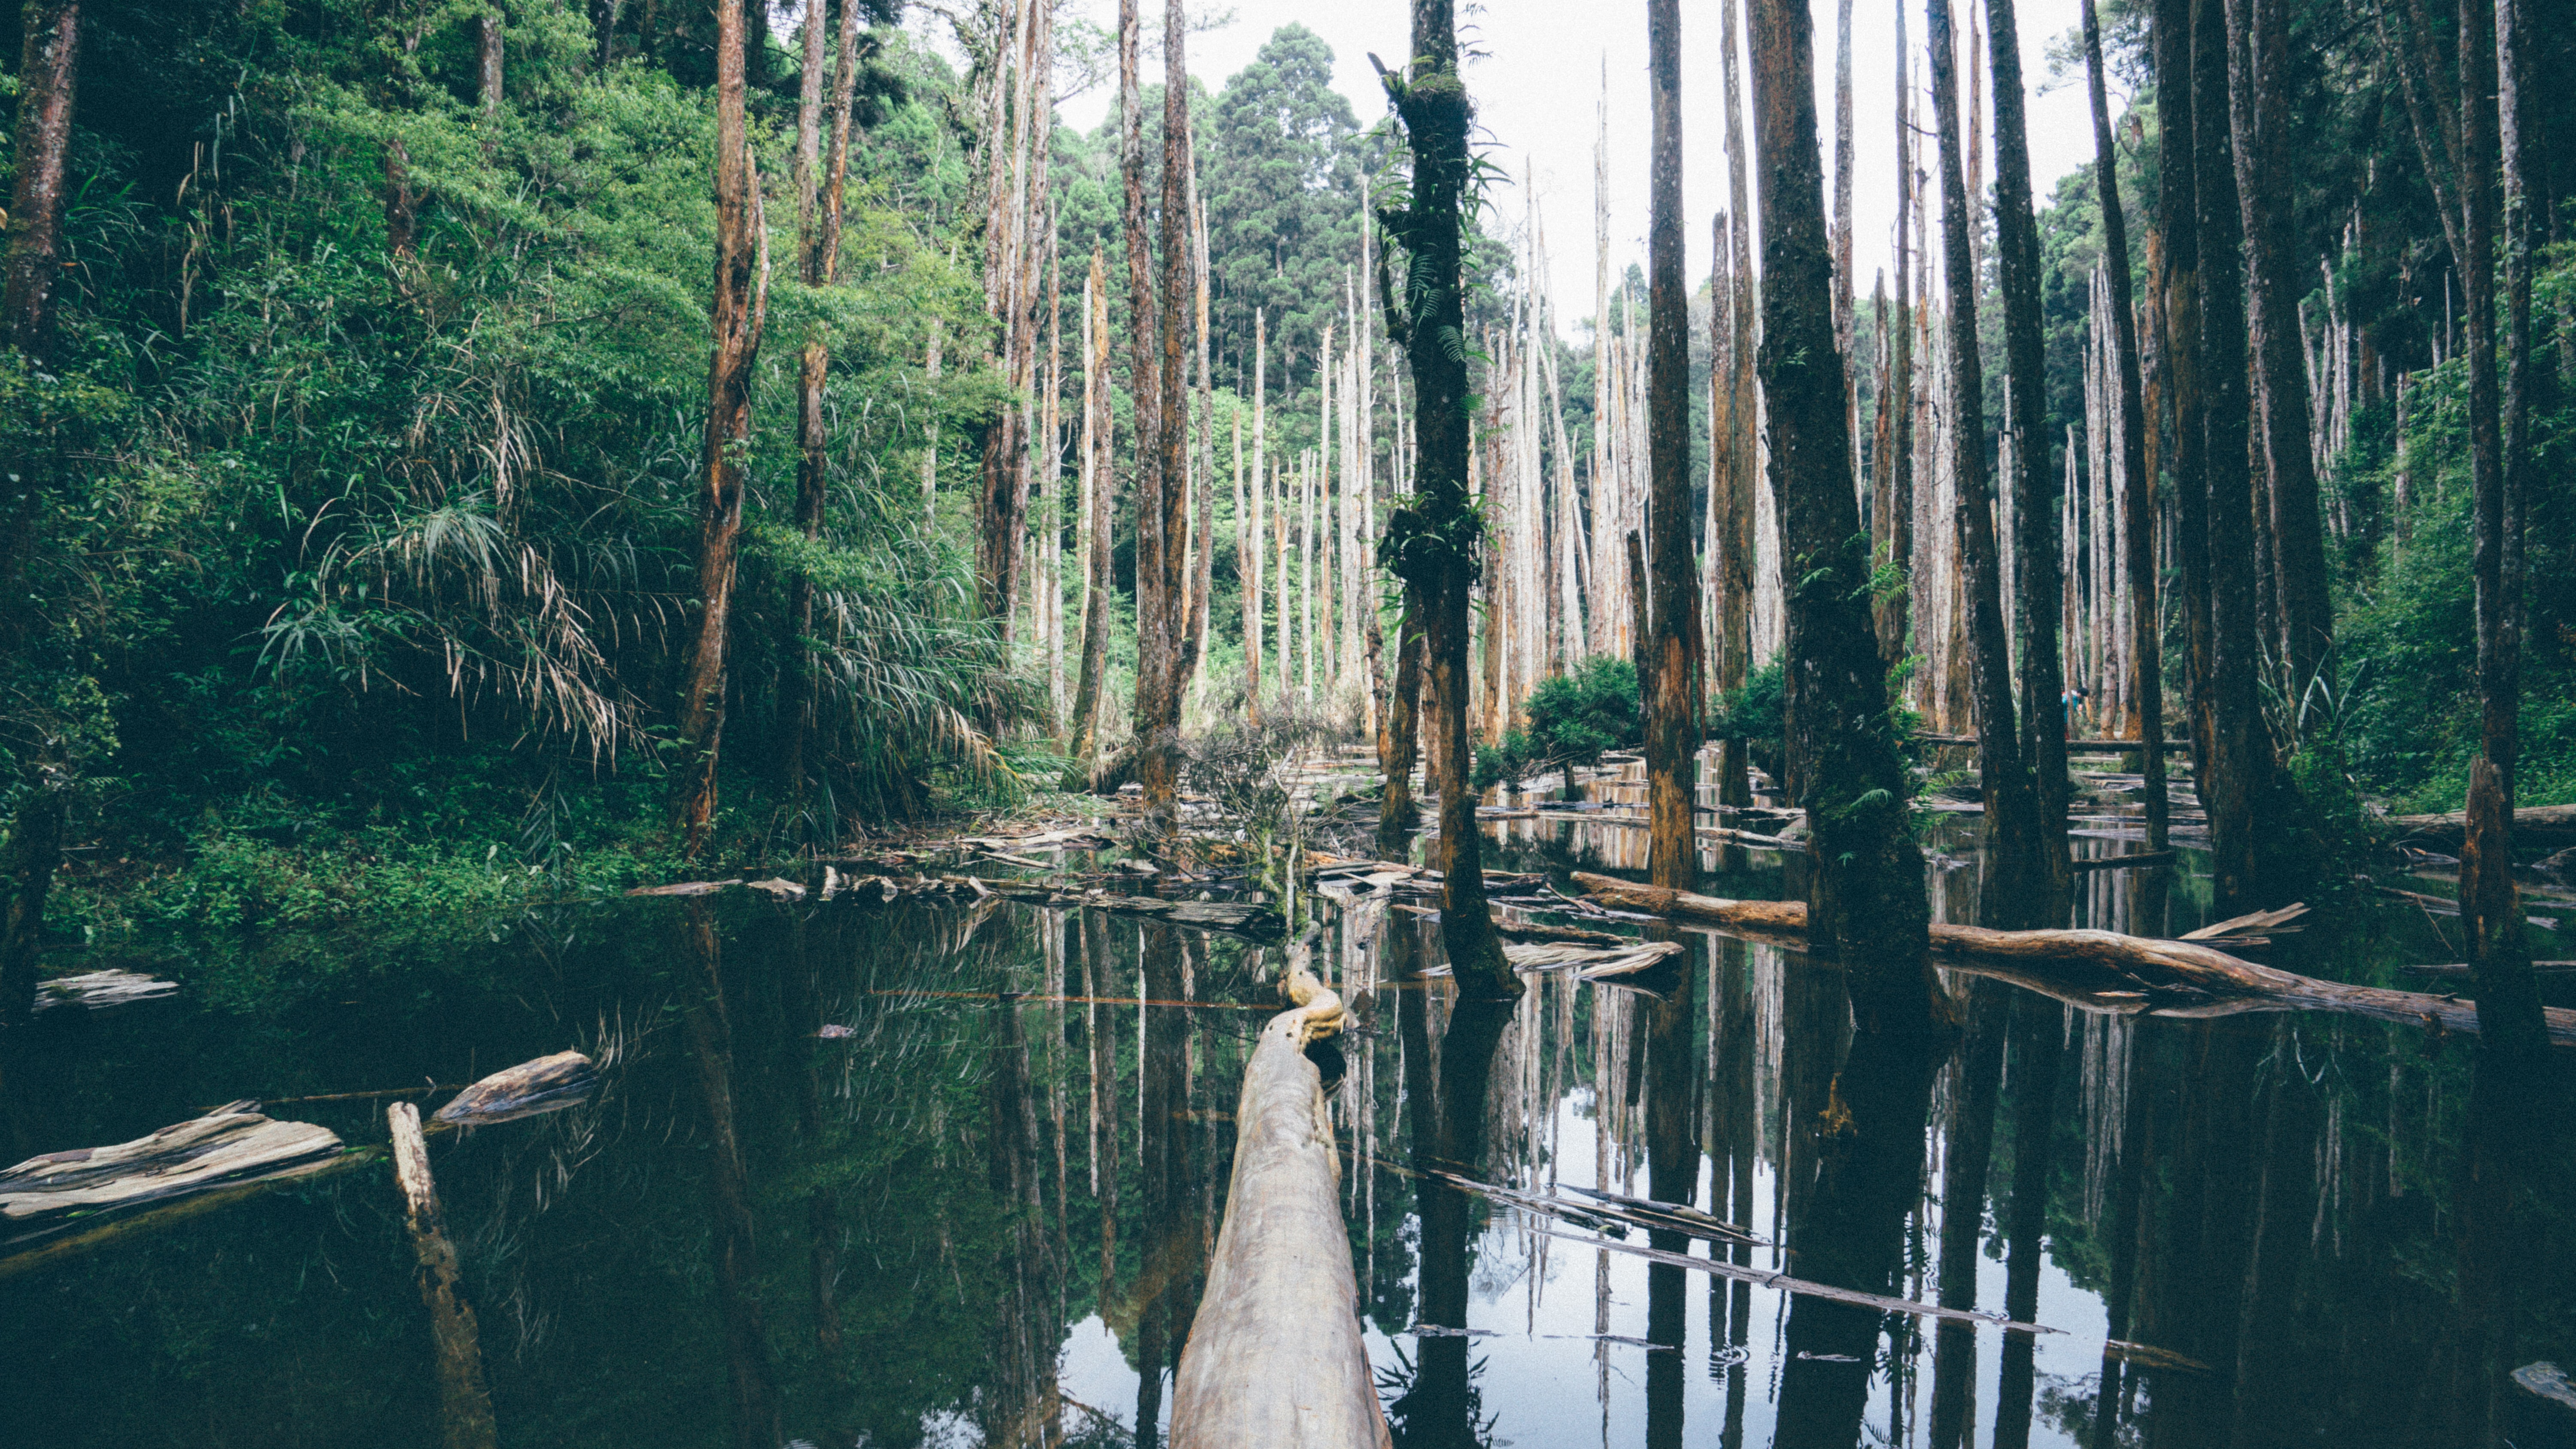 Dead and fallen trees in a pond in a forest